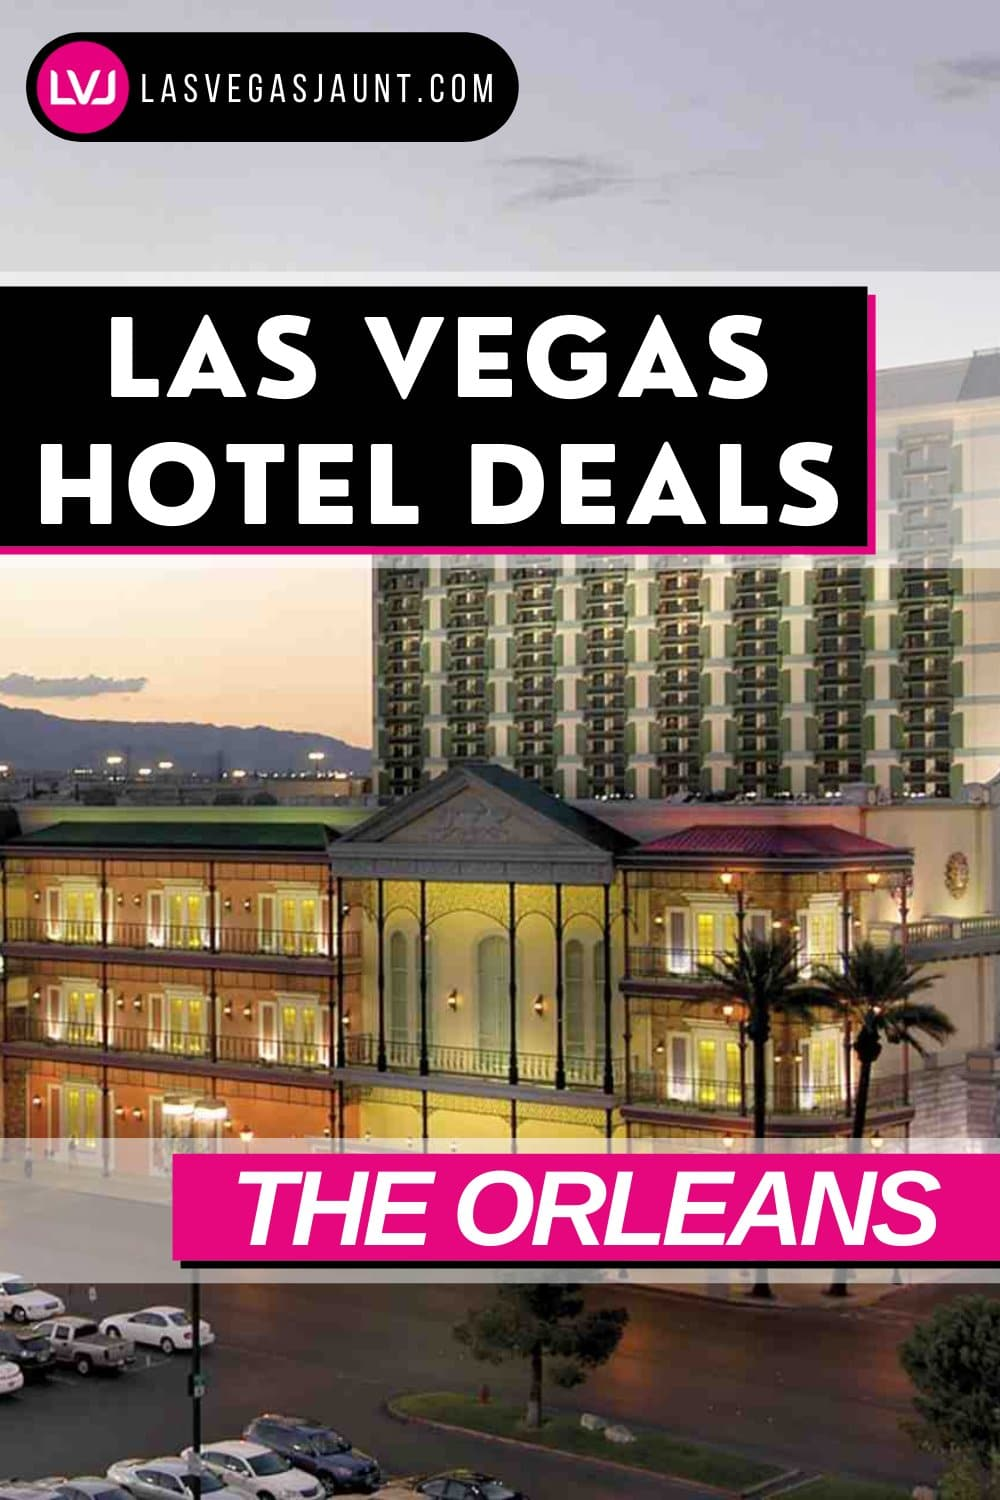 The Orleans Hotel Las Vegas Deals Promo Codes & Discounts